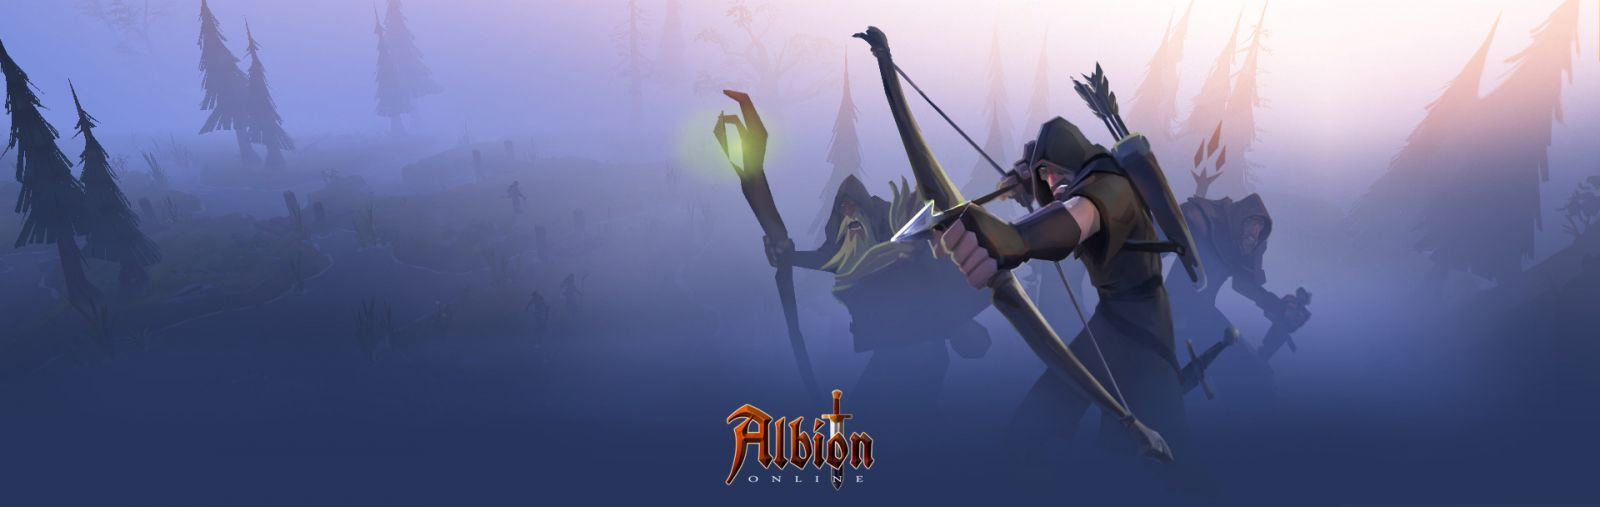 Why Albion Online Players Enjoy Playing The Cluster Game - upalbion com